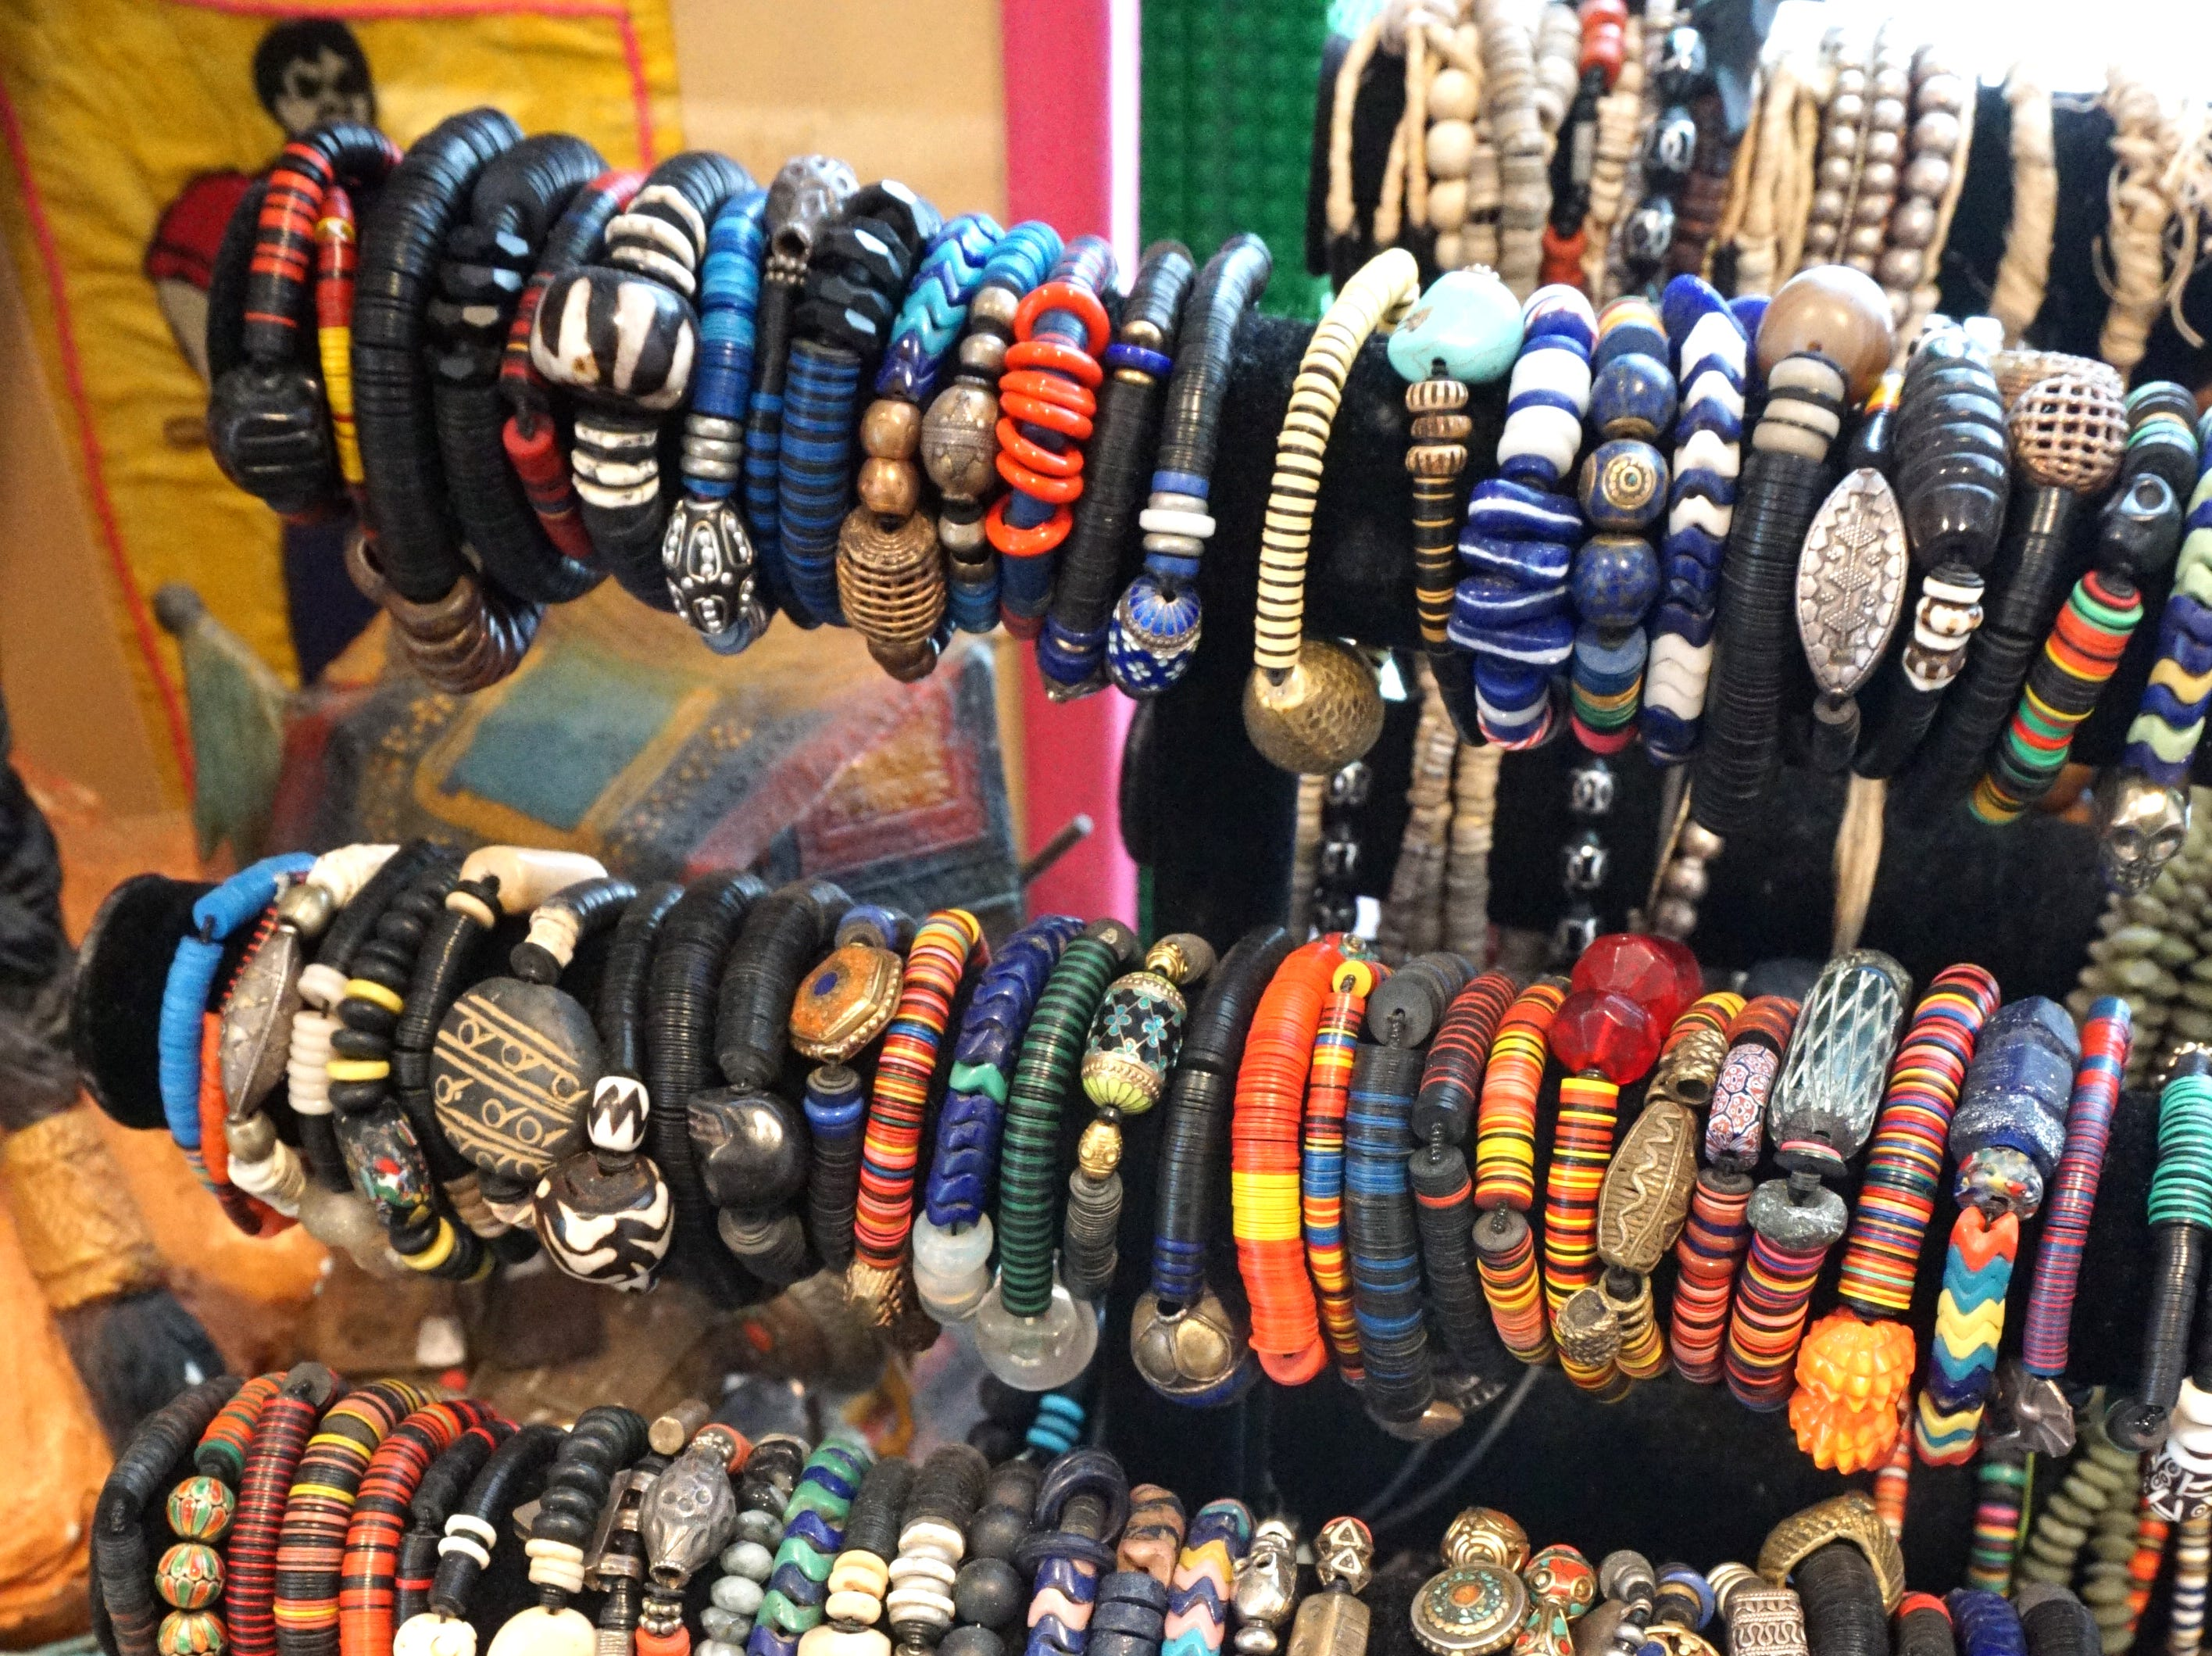 Jolie Altman has lots of bracelets ready to go for this weekend's pop-up shops at the Detroit Foundation Hotel.